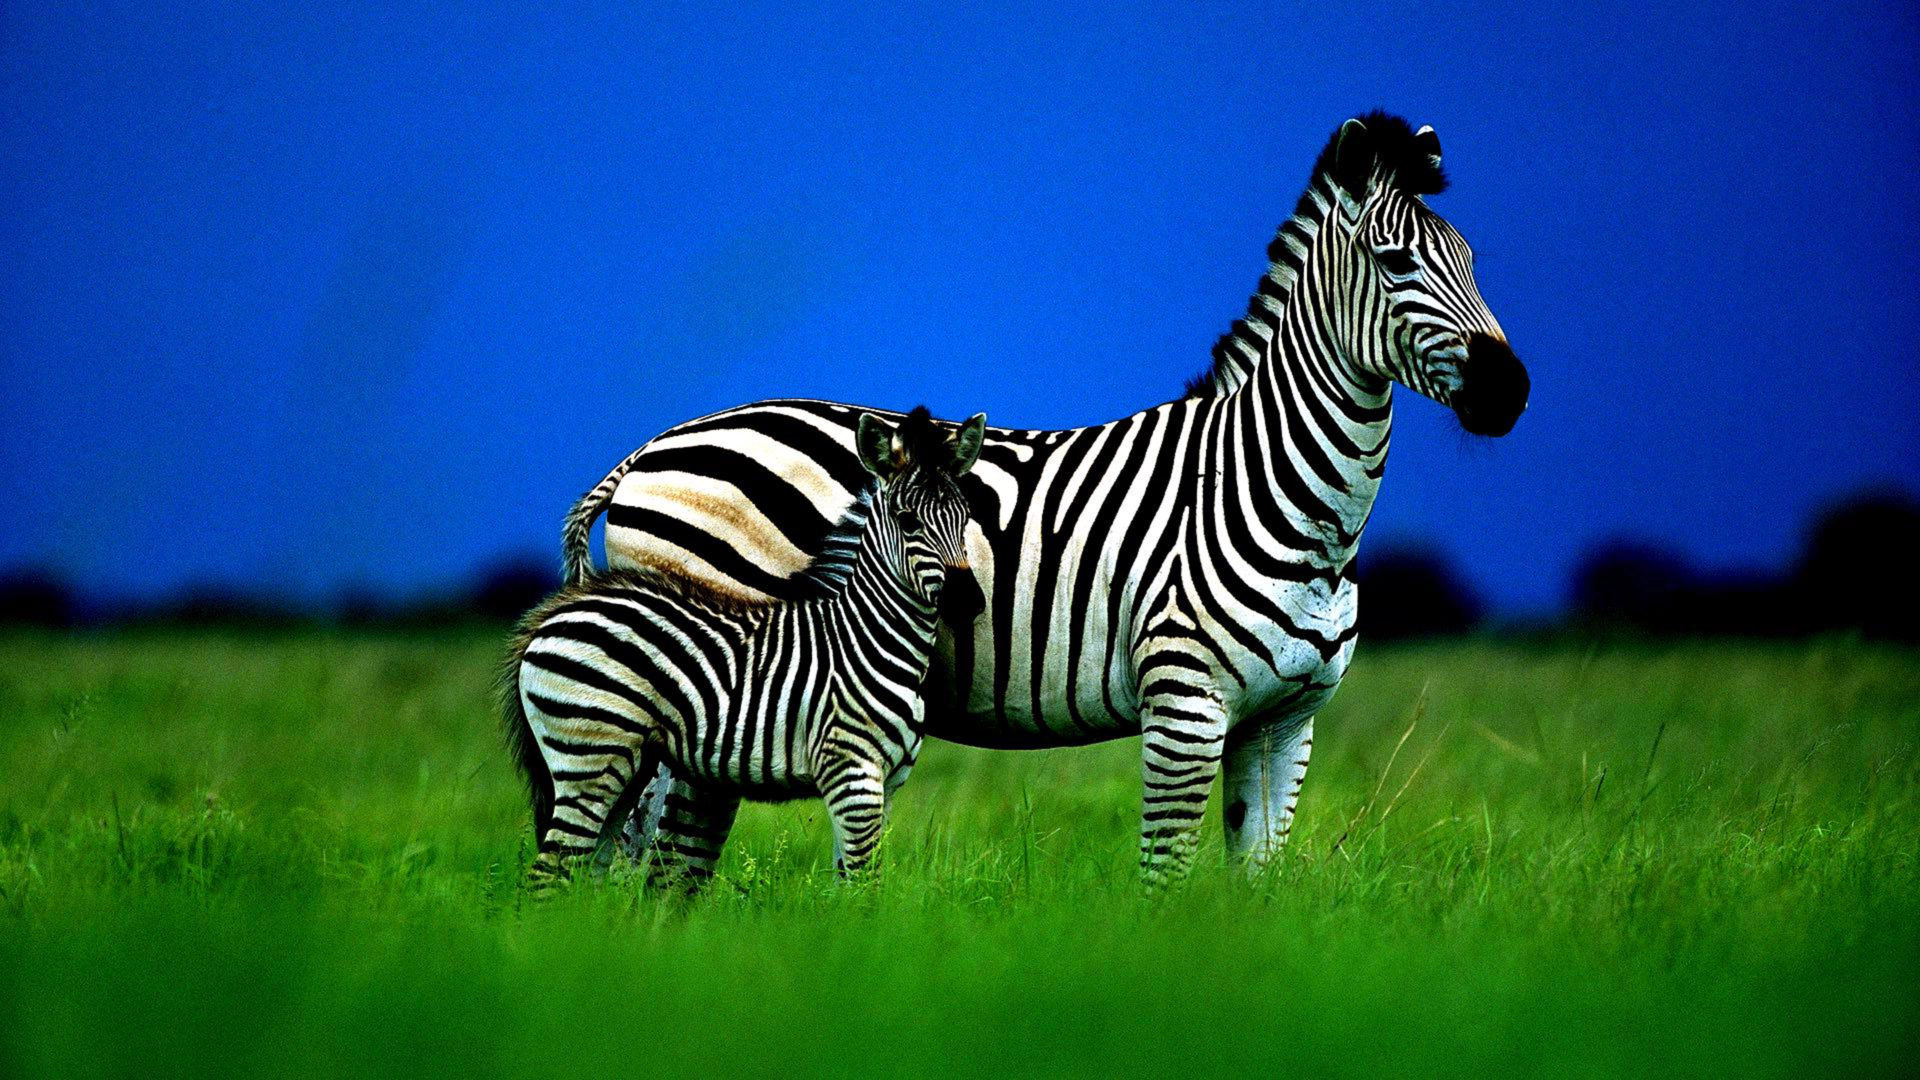 Wallpaper Hd For Desktop Full Screen Cute Baby Zebra Family Striped Grass Sky Cub Hogh Contrast Hd